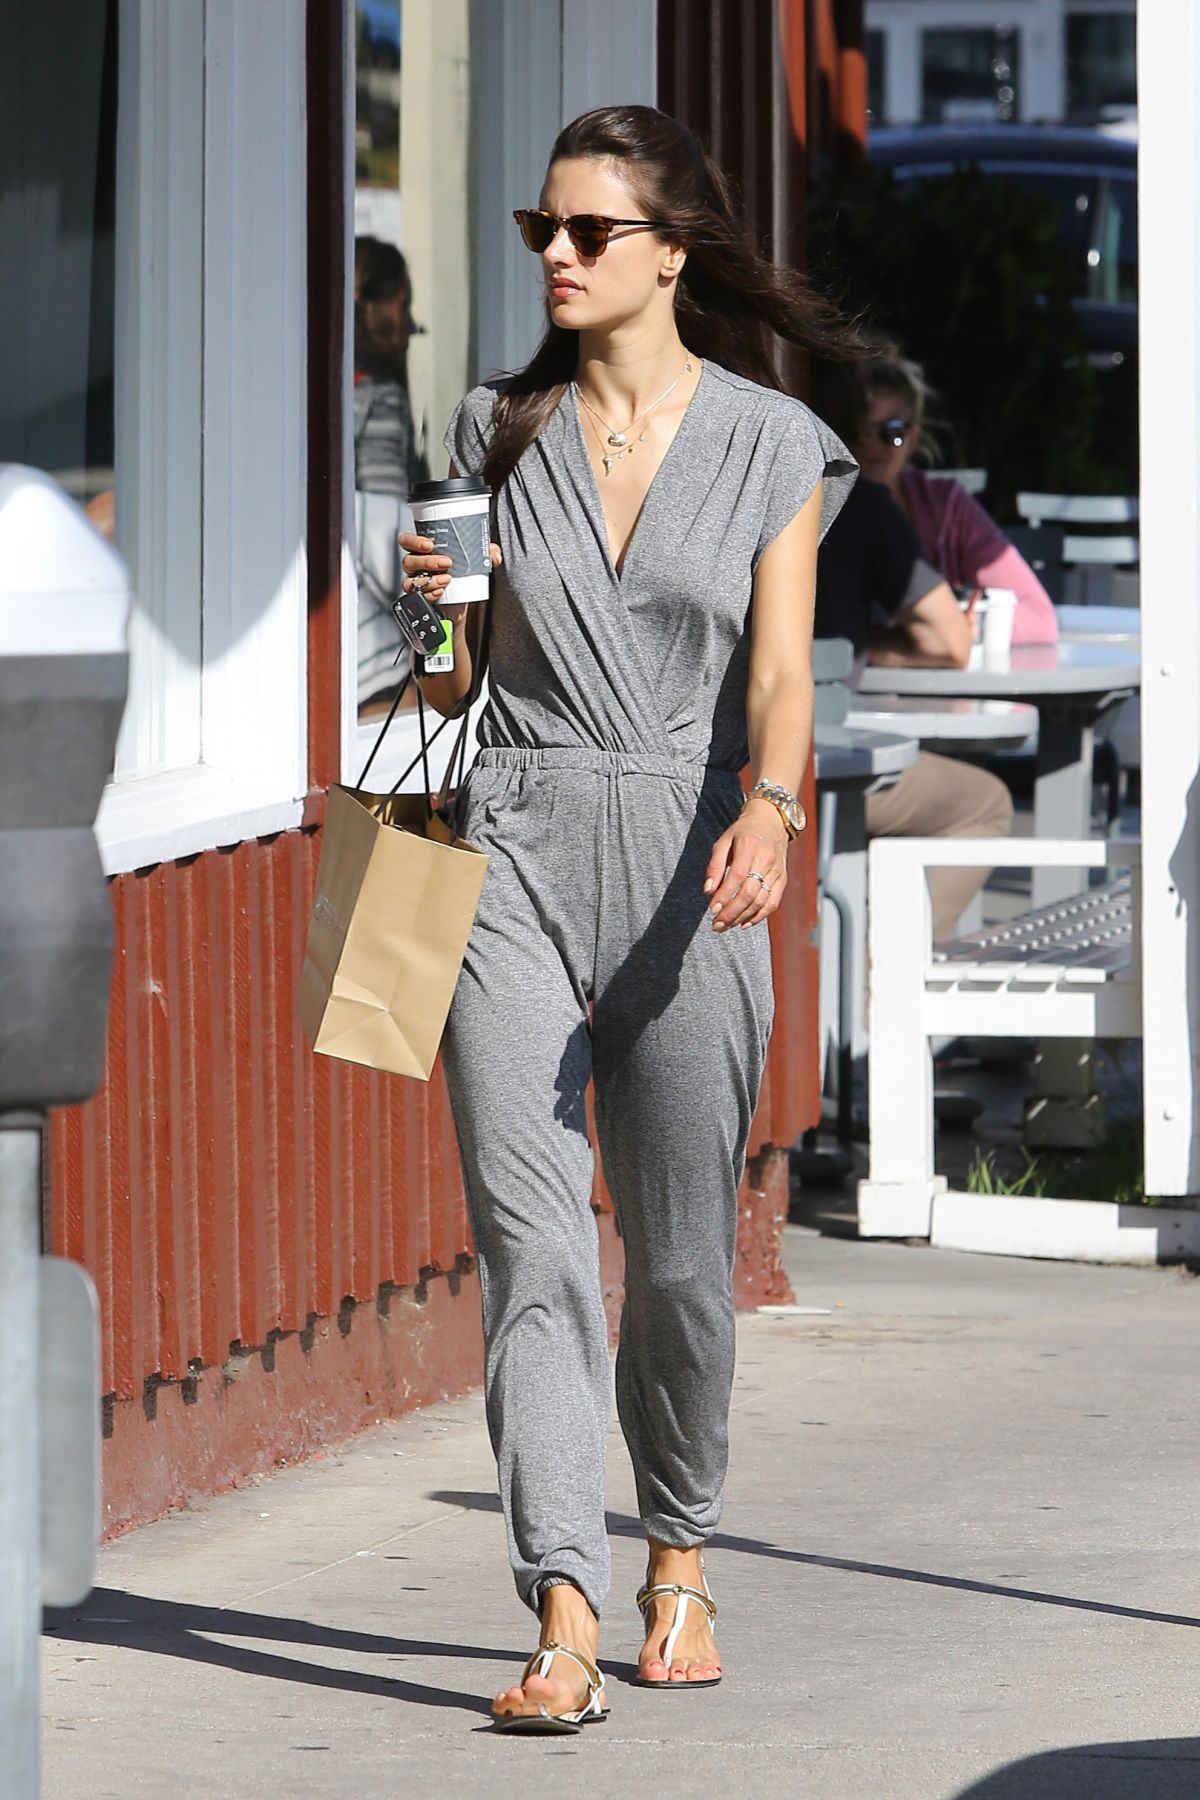 ALESSANDRA AMBROSIO Out and About in Brentwood 06/06/2015